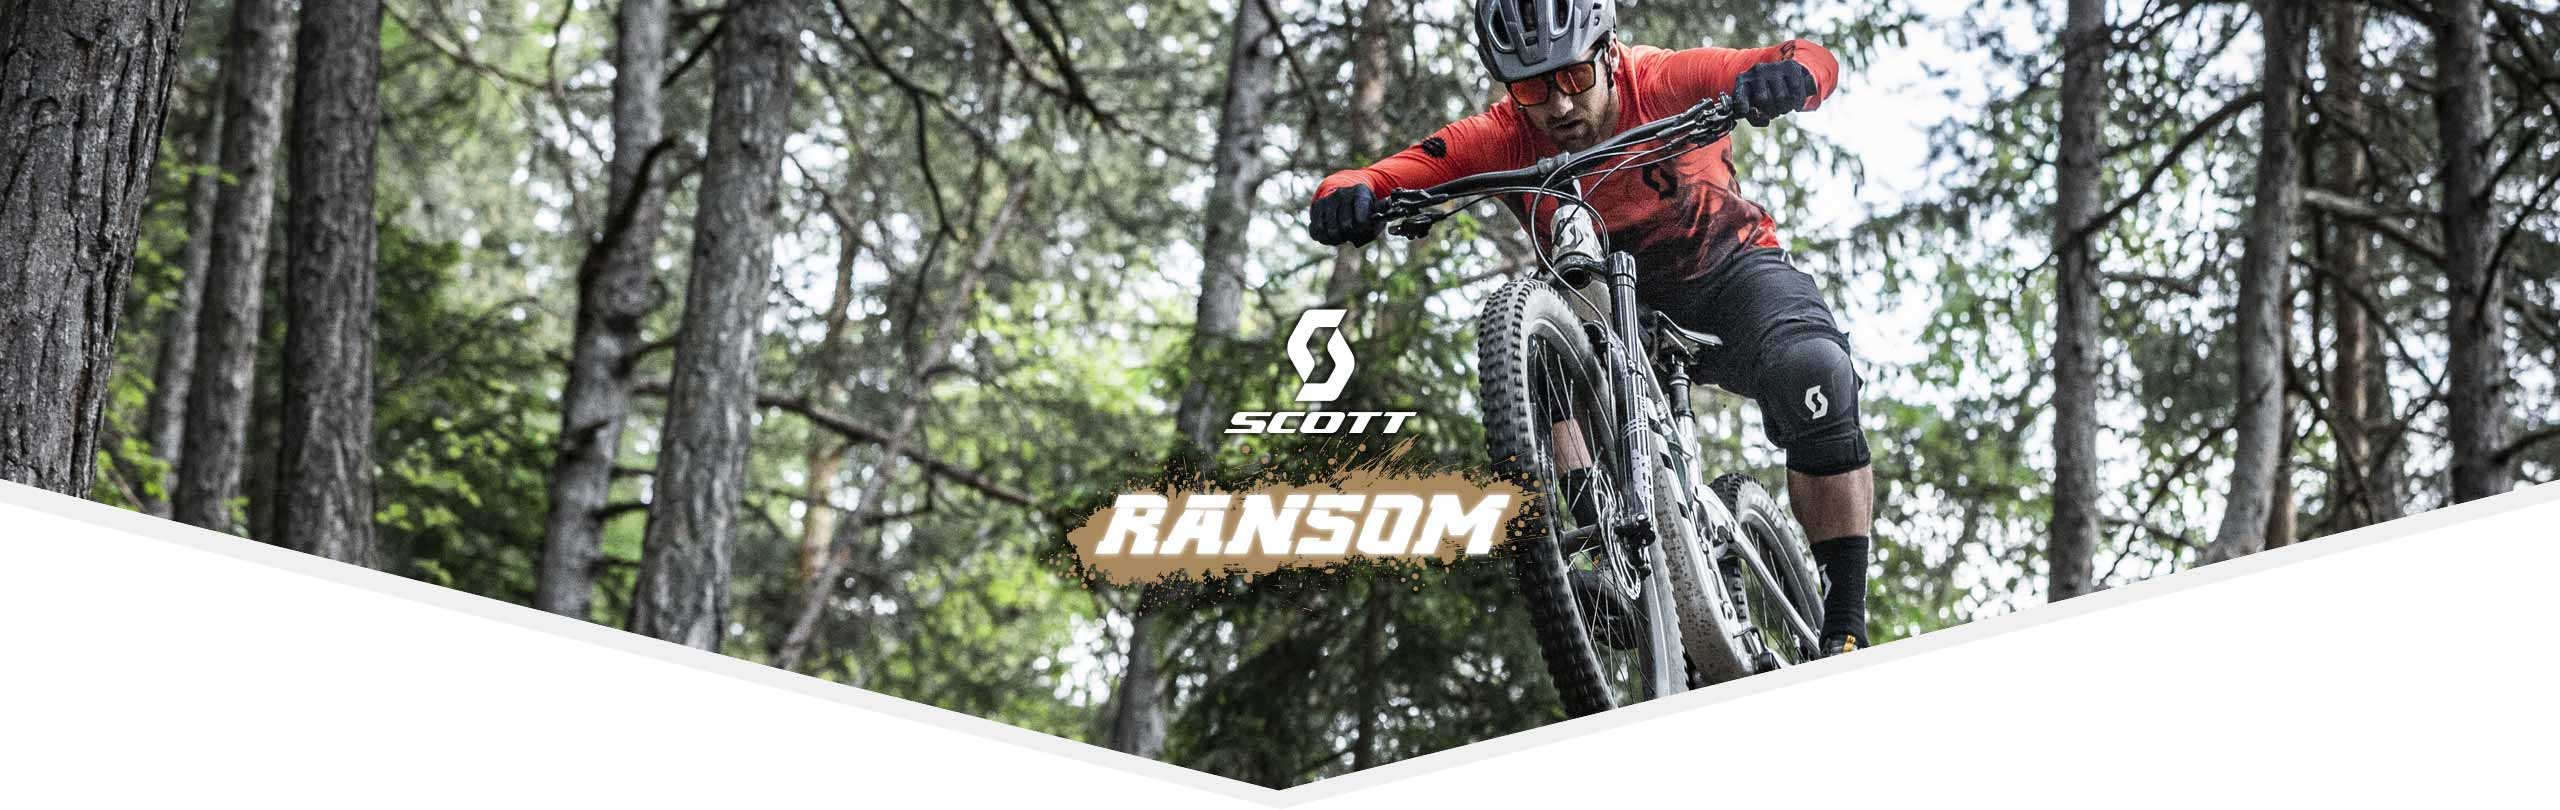 header Scott ransom 2020